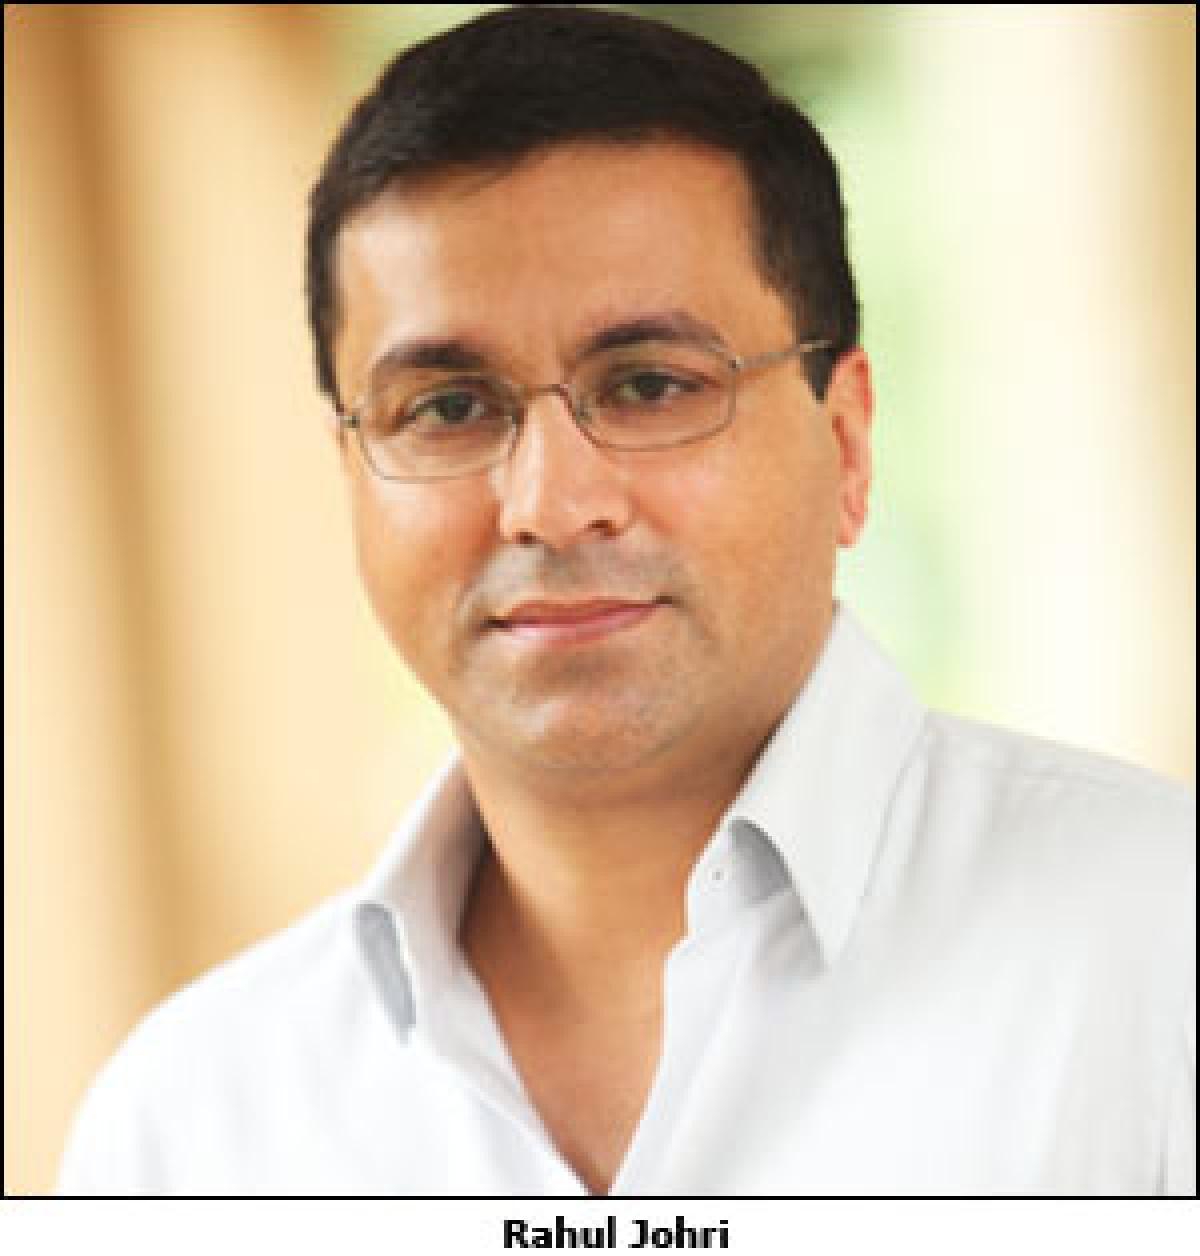 Former Discovery Networks hand Rahul Johri joins BCCI as CEO